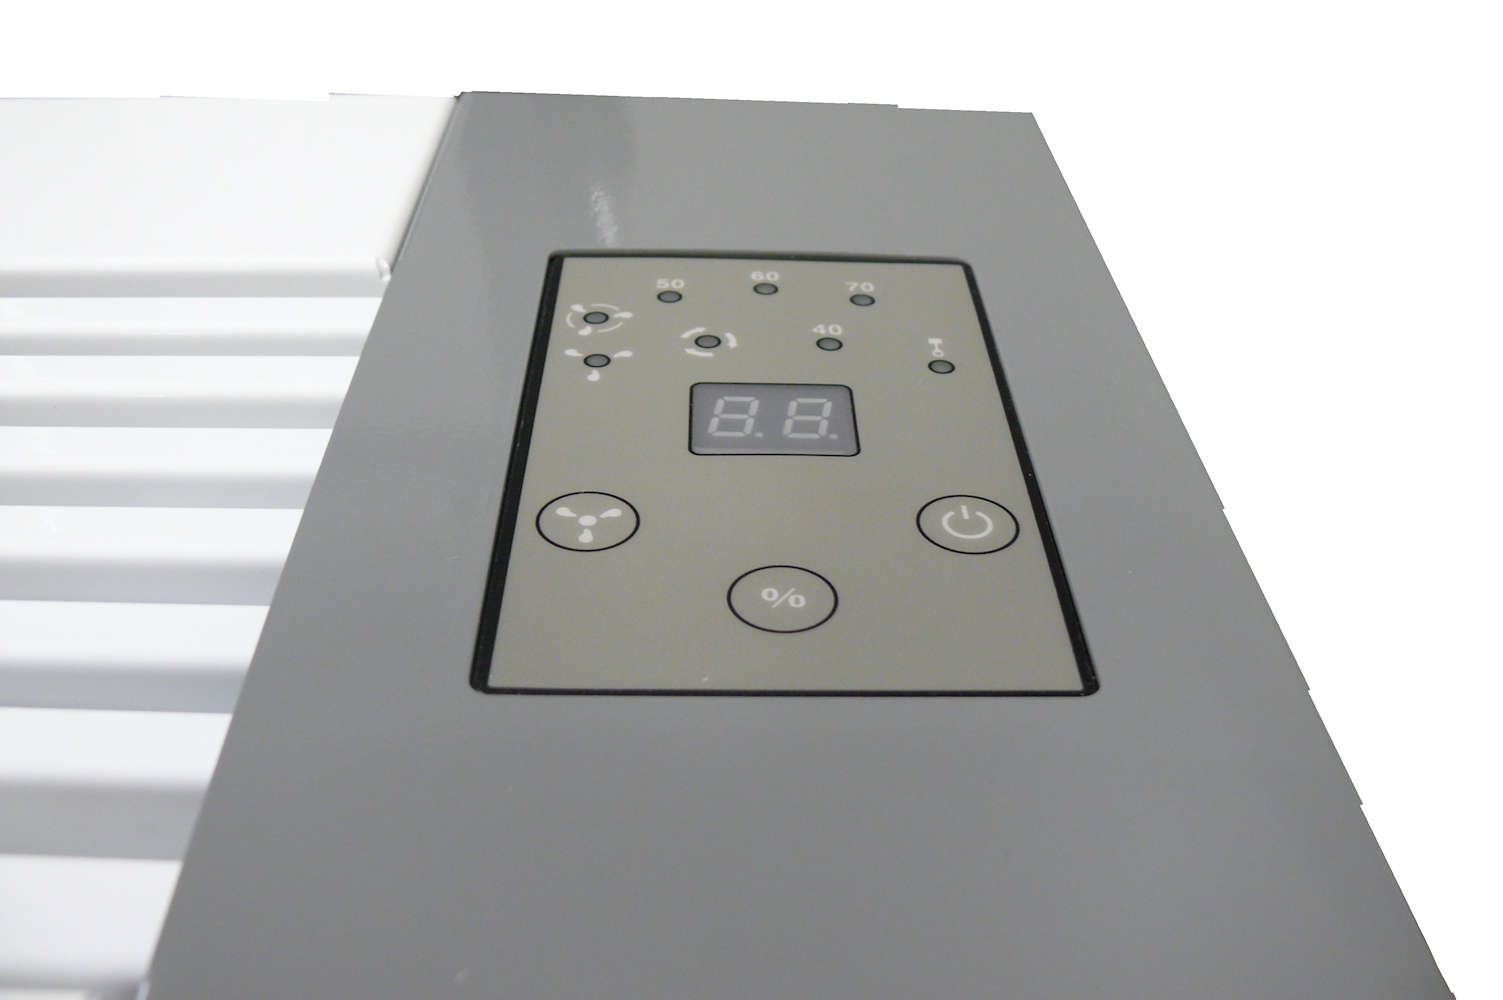 d1100 control panel dehumidifiers by Ecor Pro